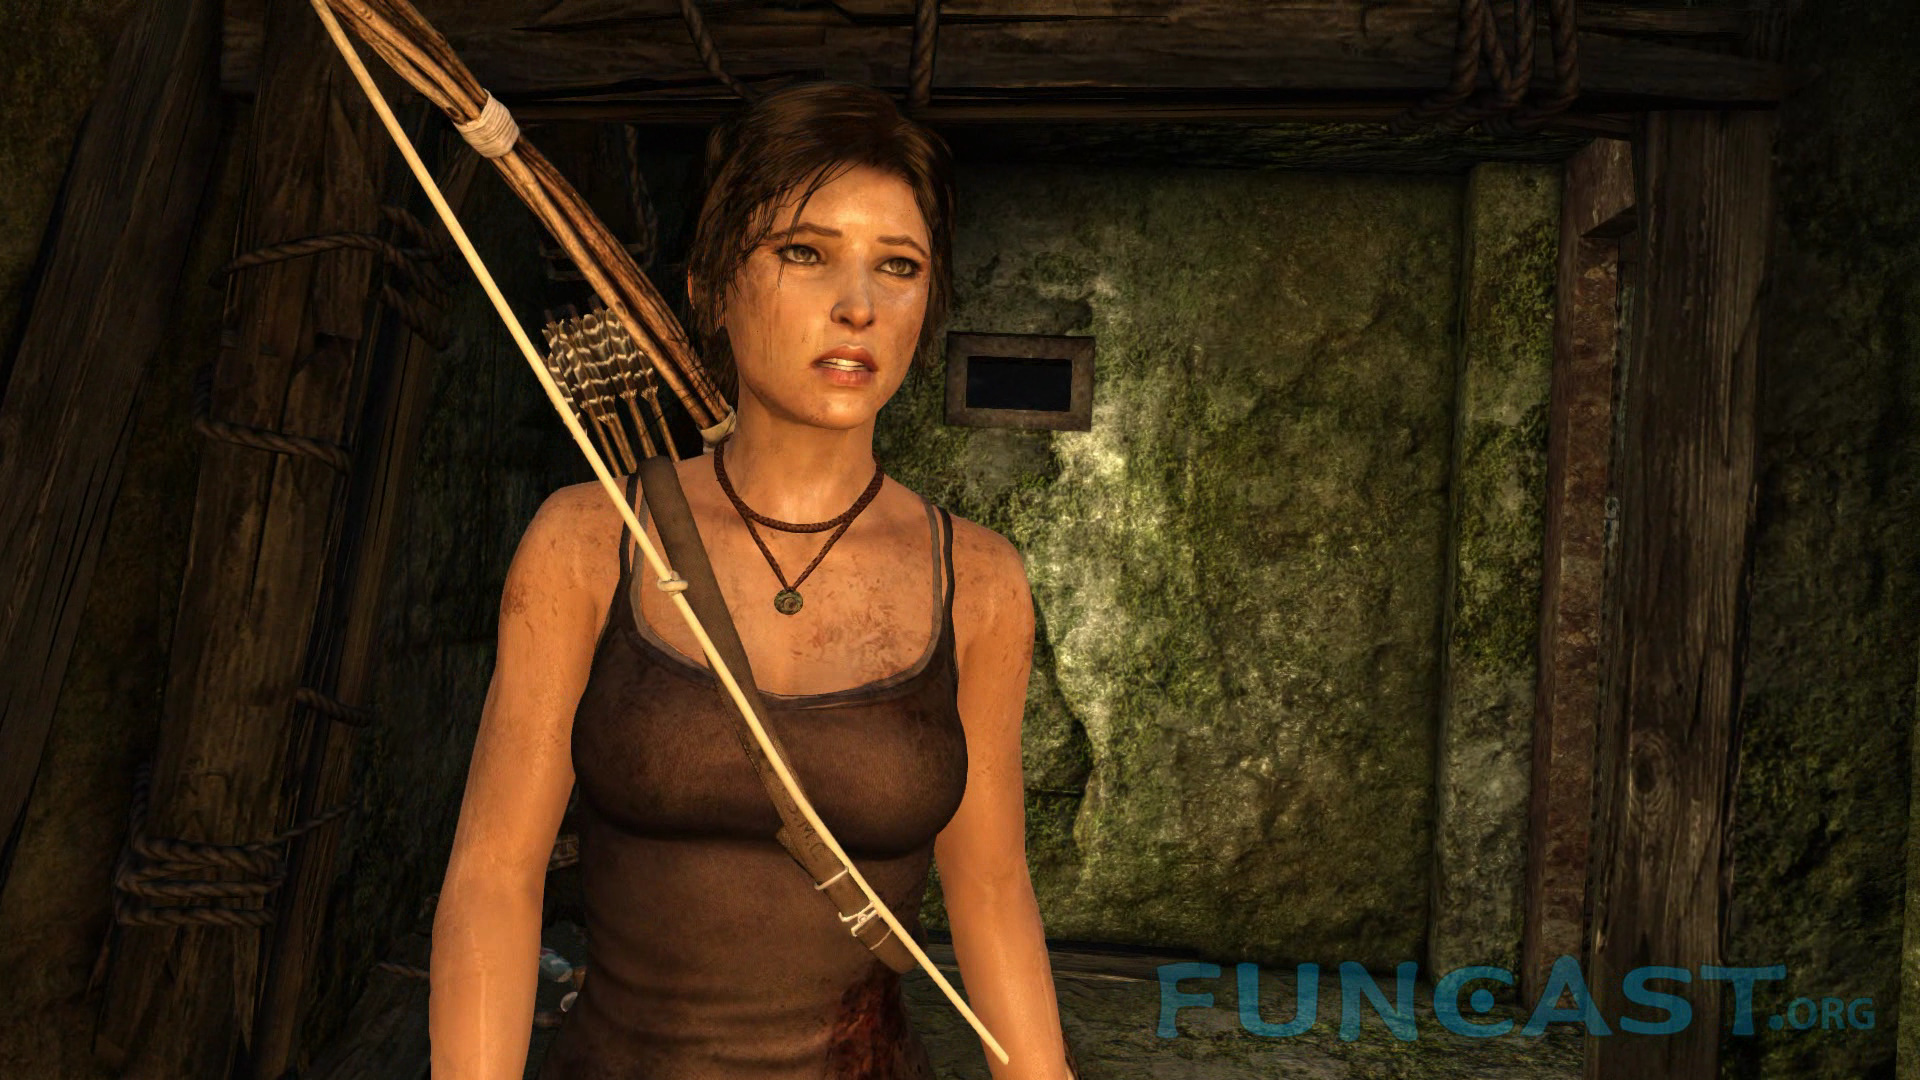 Lara croft fucks monster sex videos adult picture